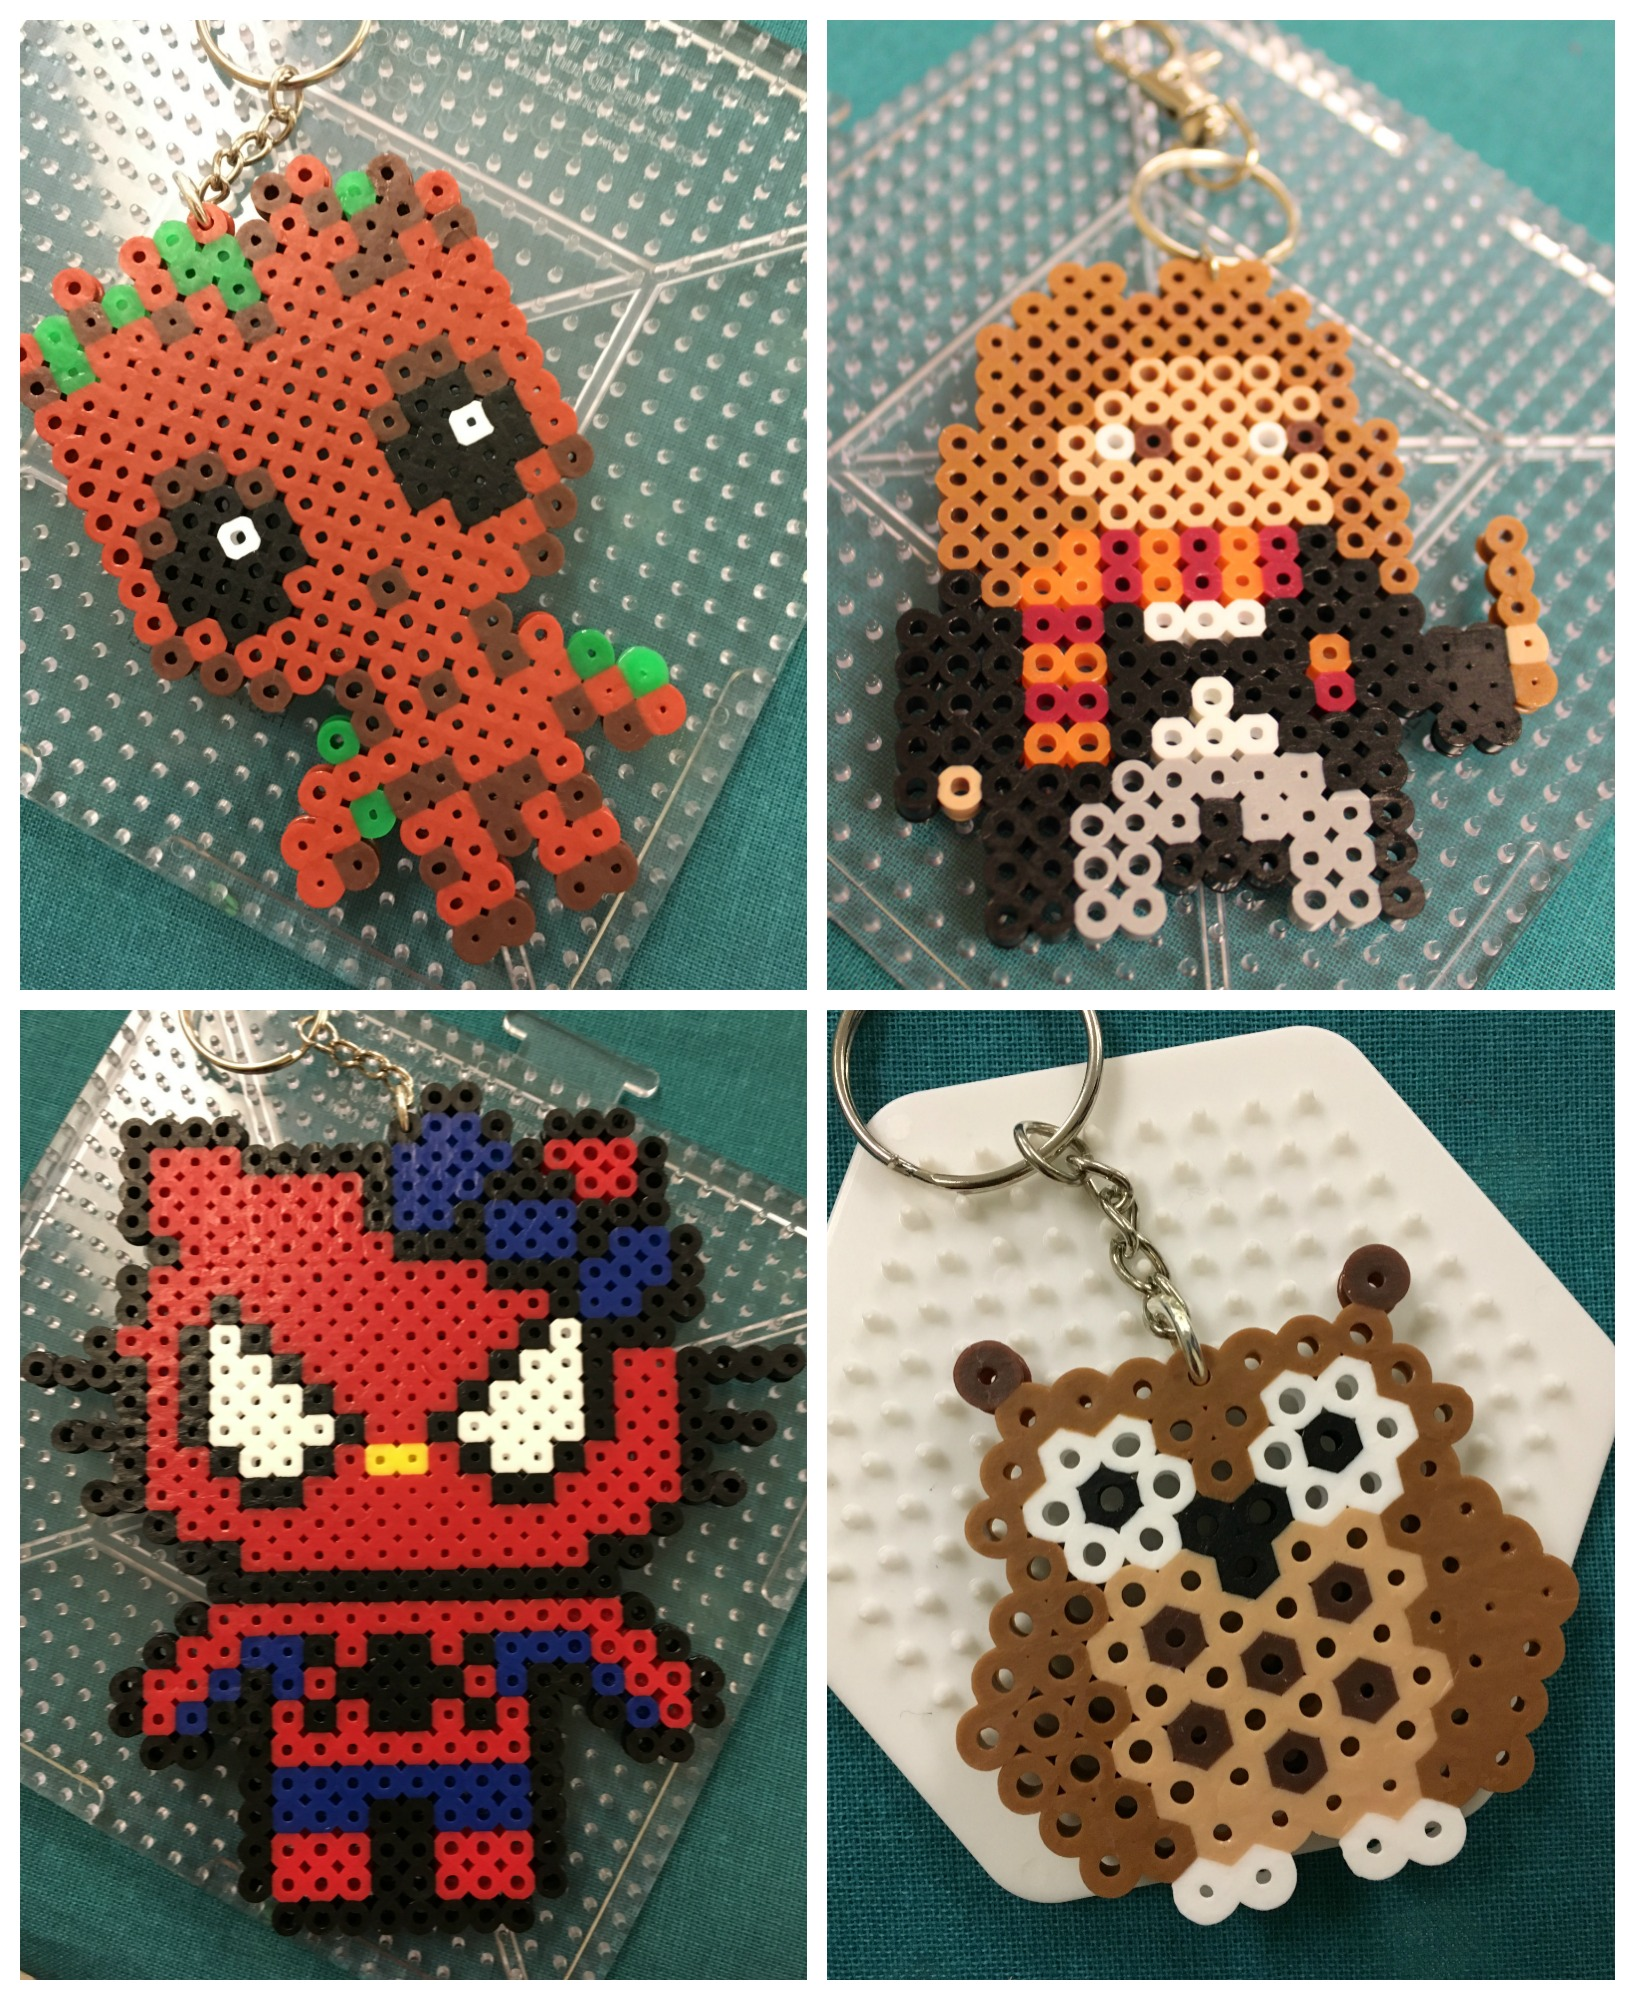 Pixel art made into key chains: Groot, Hermoine, owl, and Spider-Man Hello Kitty